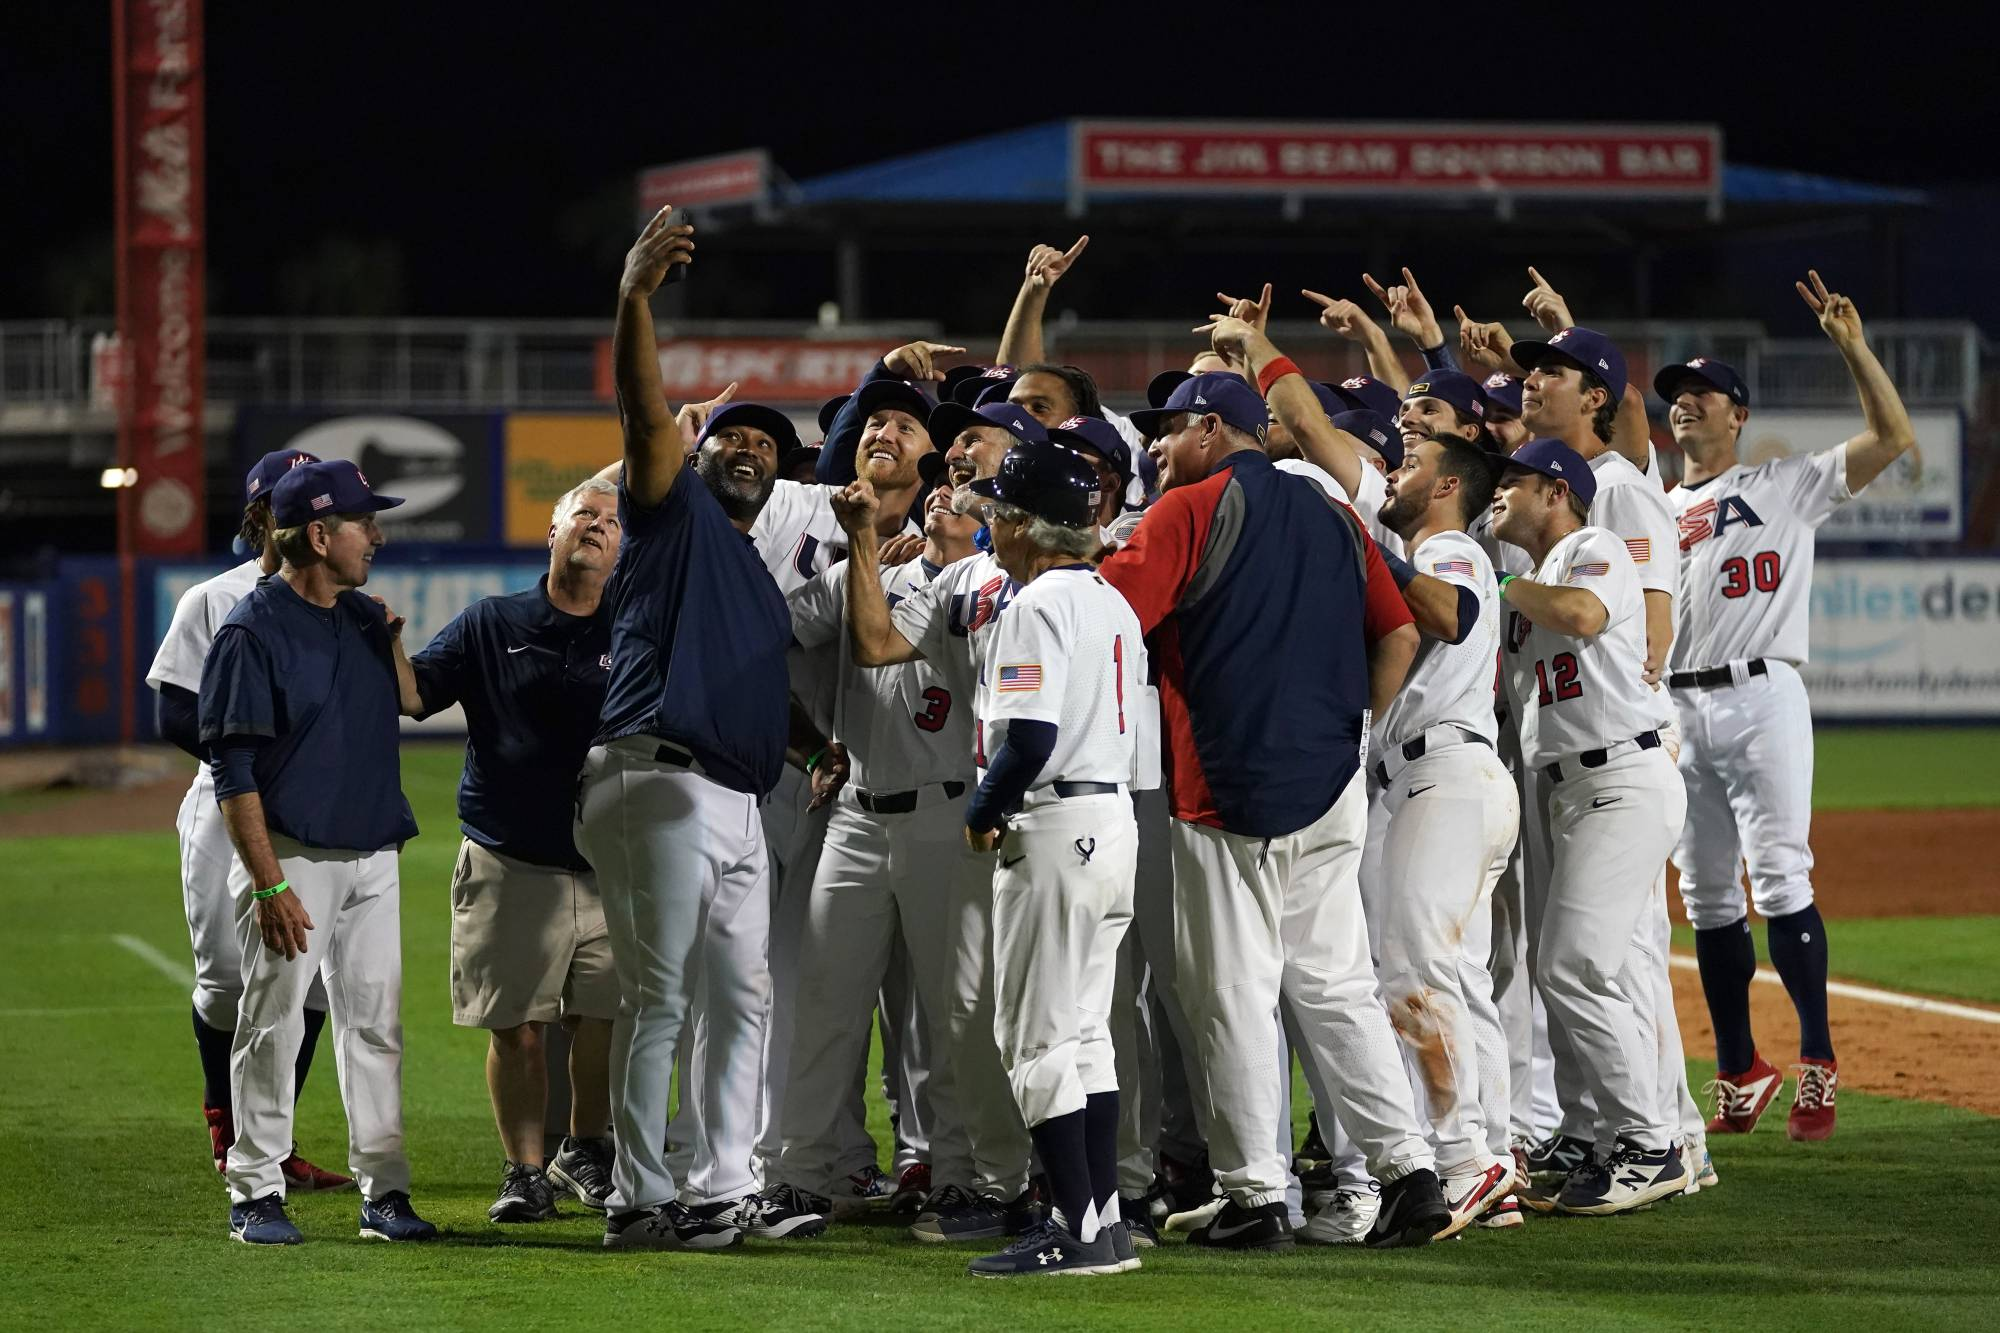 Team USA players celebrate after defeating Venezuela to qualify for the Tokyo Olympics on Saturday in Port St. Lucie, Florida. | USA TODAY / VIA REUTERS